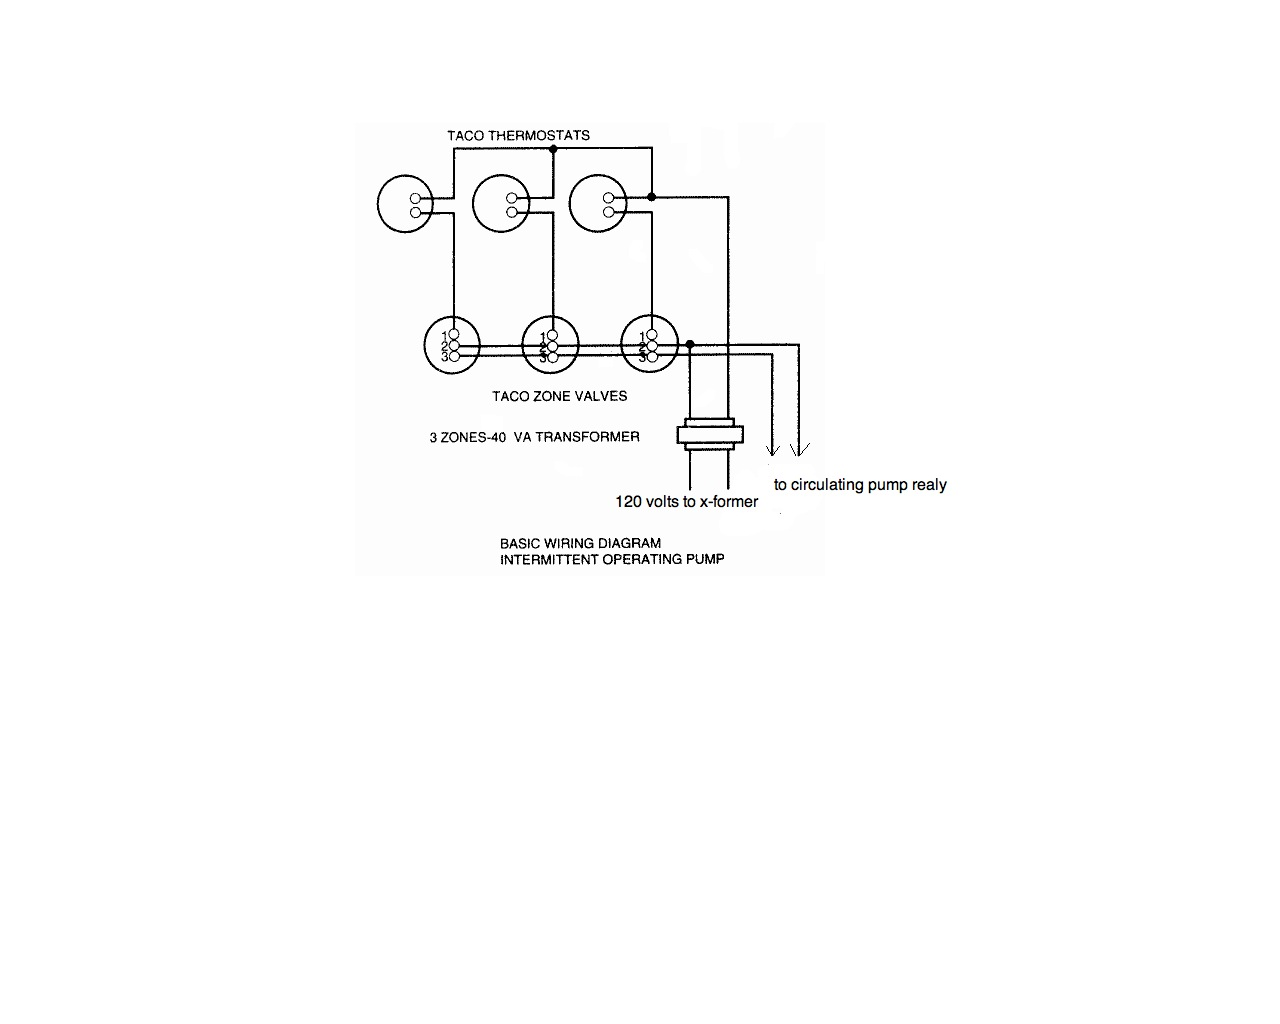 Taco Circ Relay Wiring Free Diagram For You Honeywell Zone Valve I Am An Electrician And My Plumber Wants Me To Wire A Switching